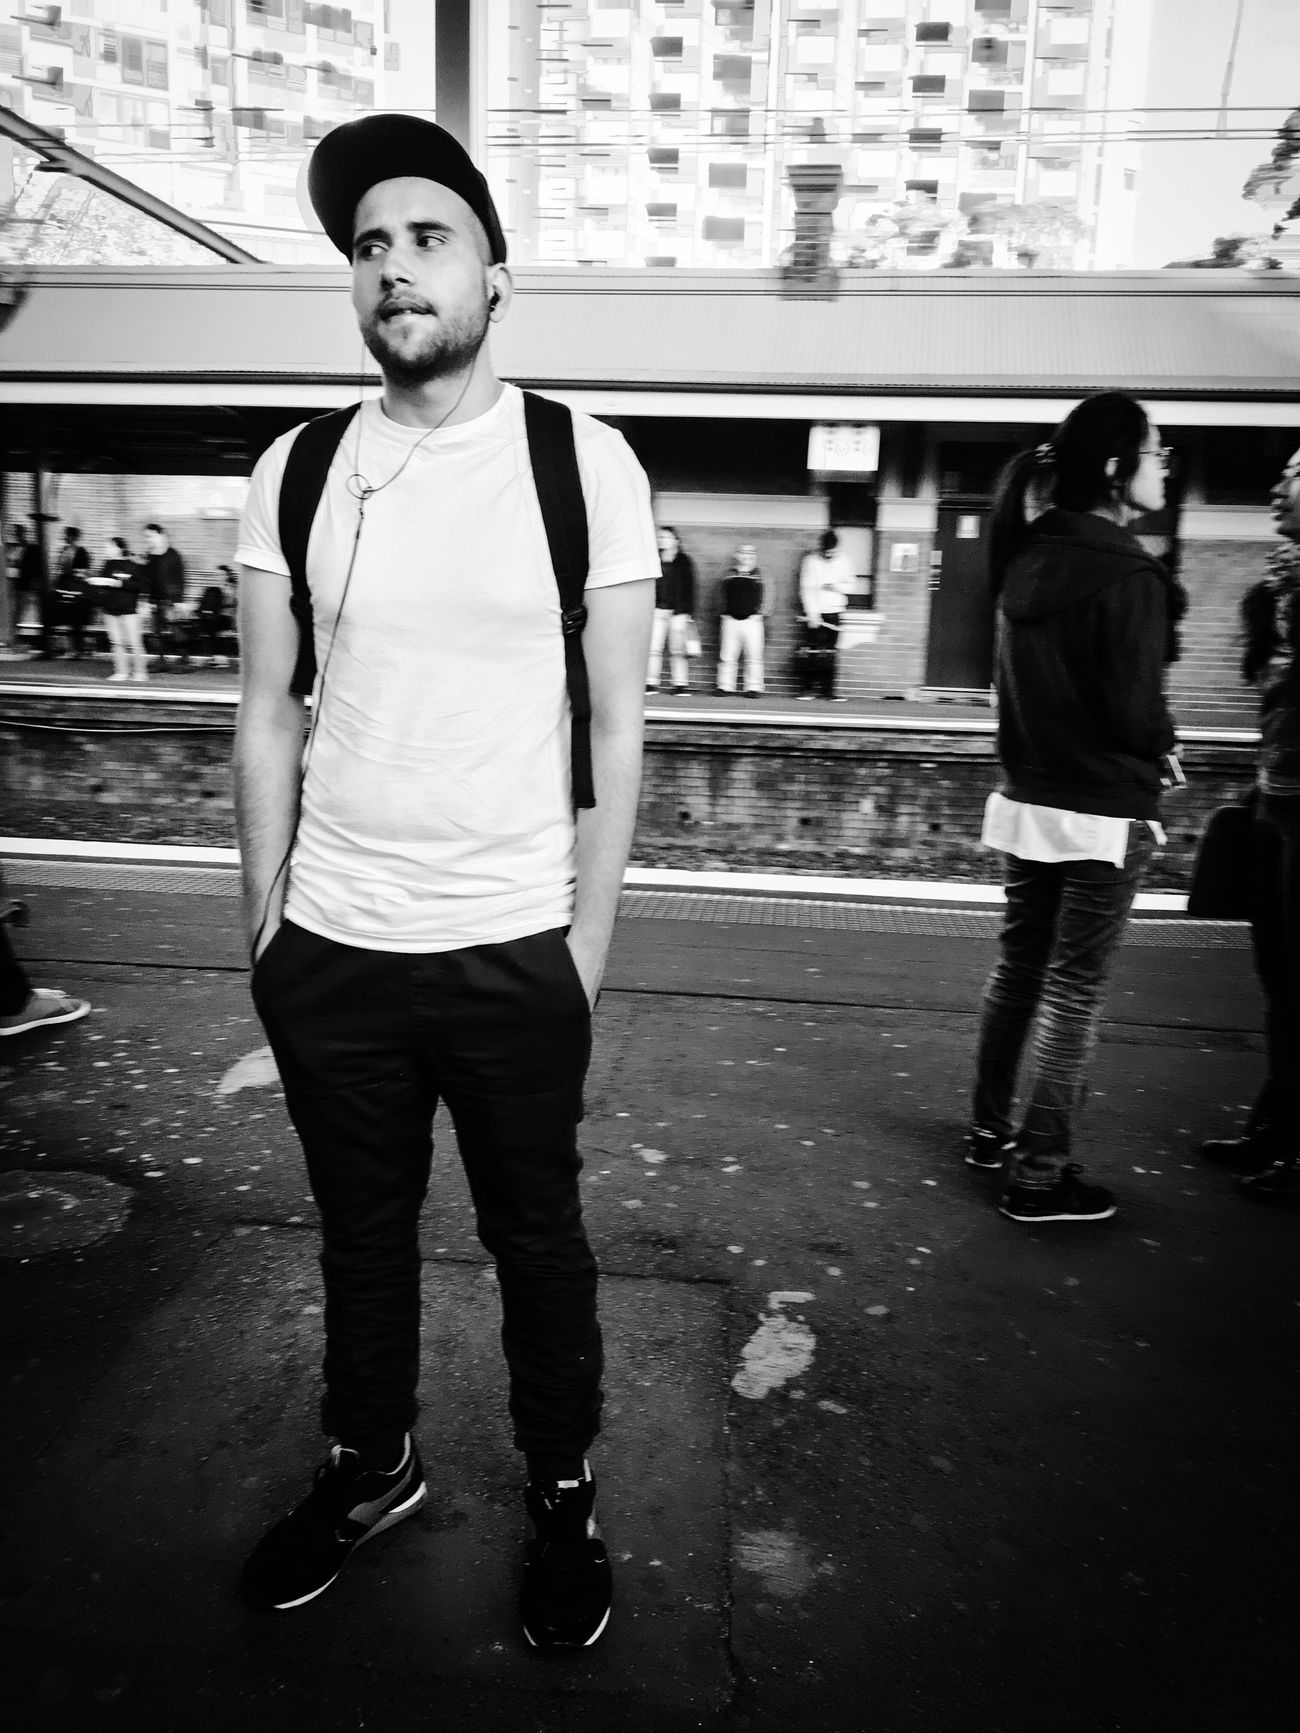 Blackandwhite Photography Street Photography Train Station Platform Cool Guy